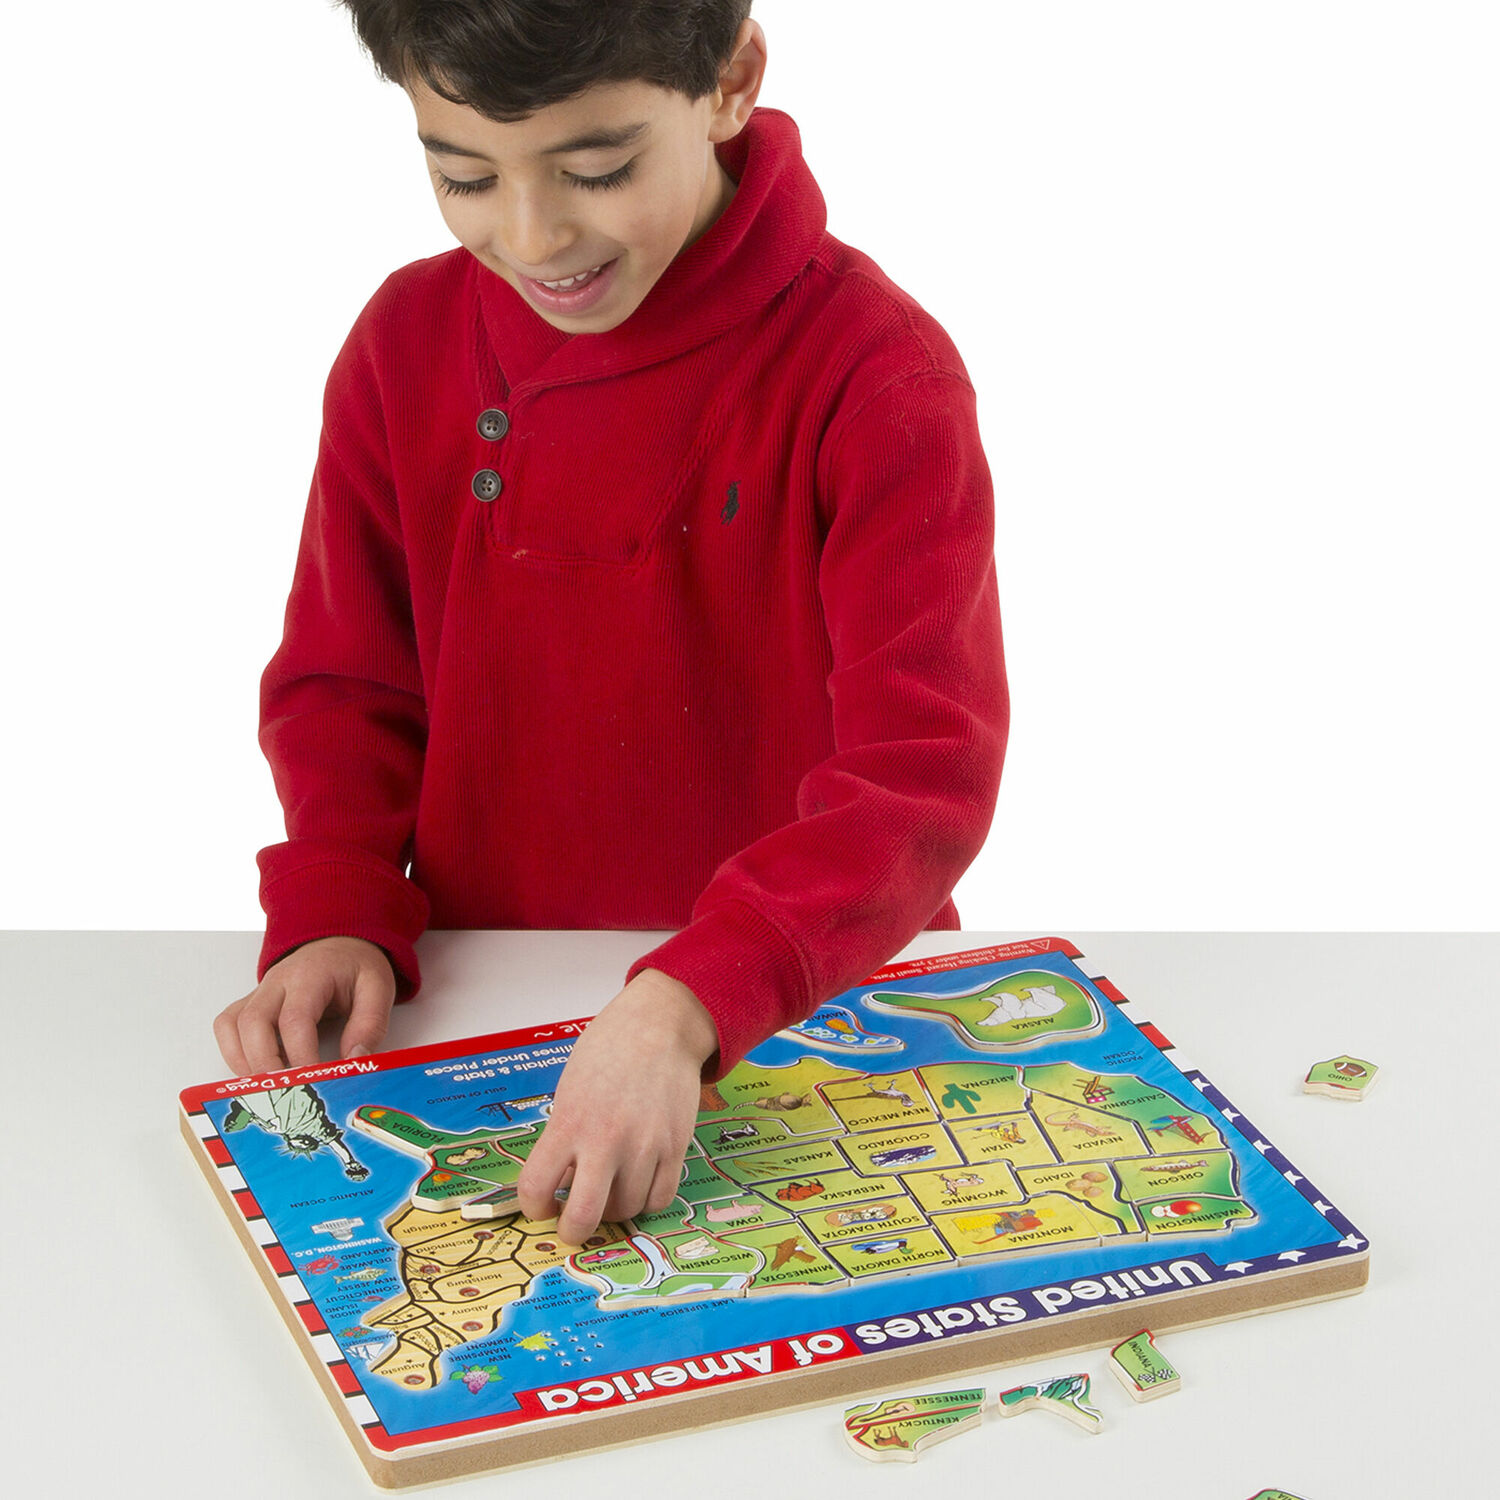 Demo Site Us Map Sound Puzzle Out Of This World Toys - Puzzle-us-map